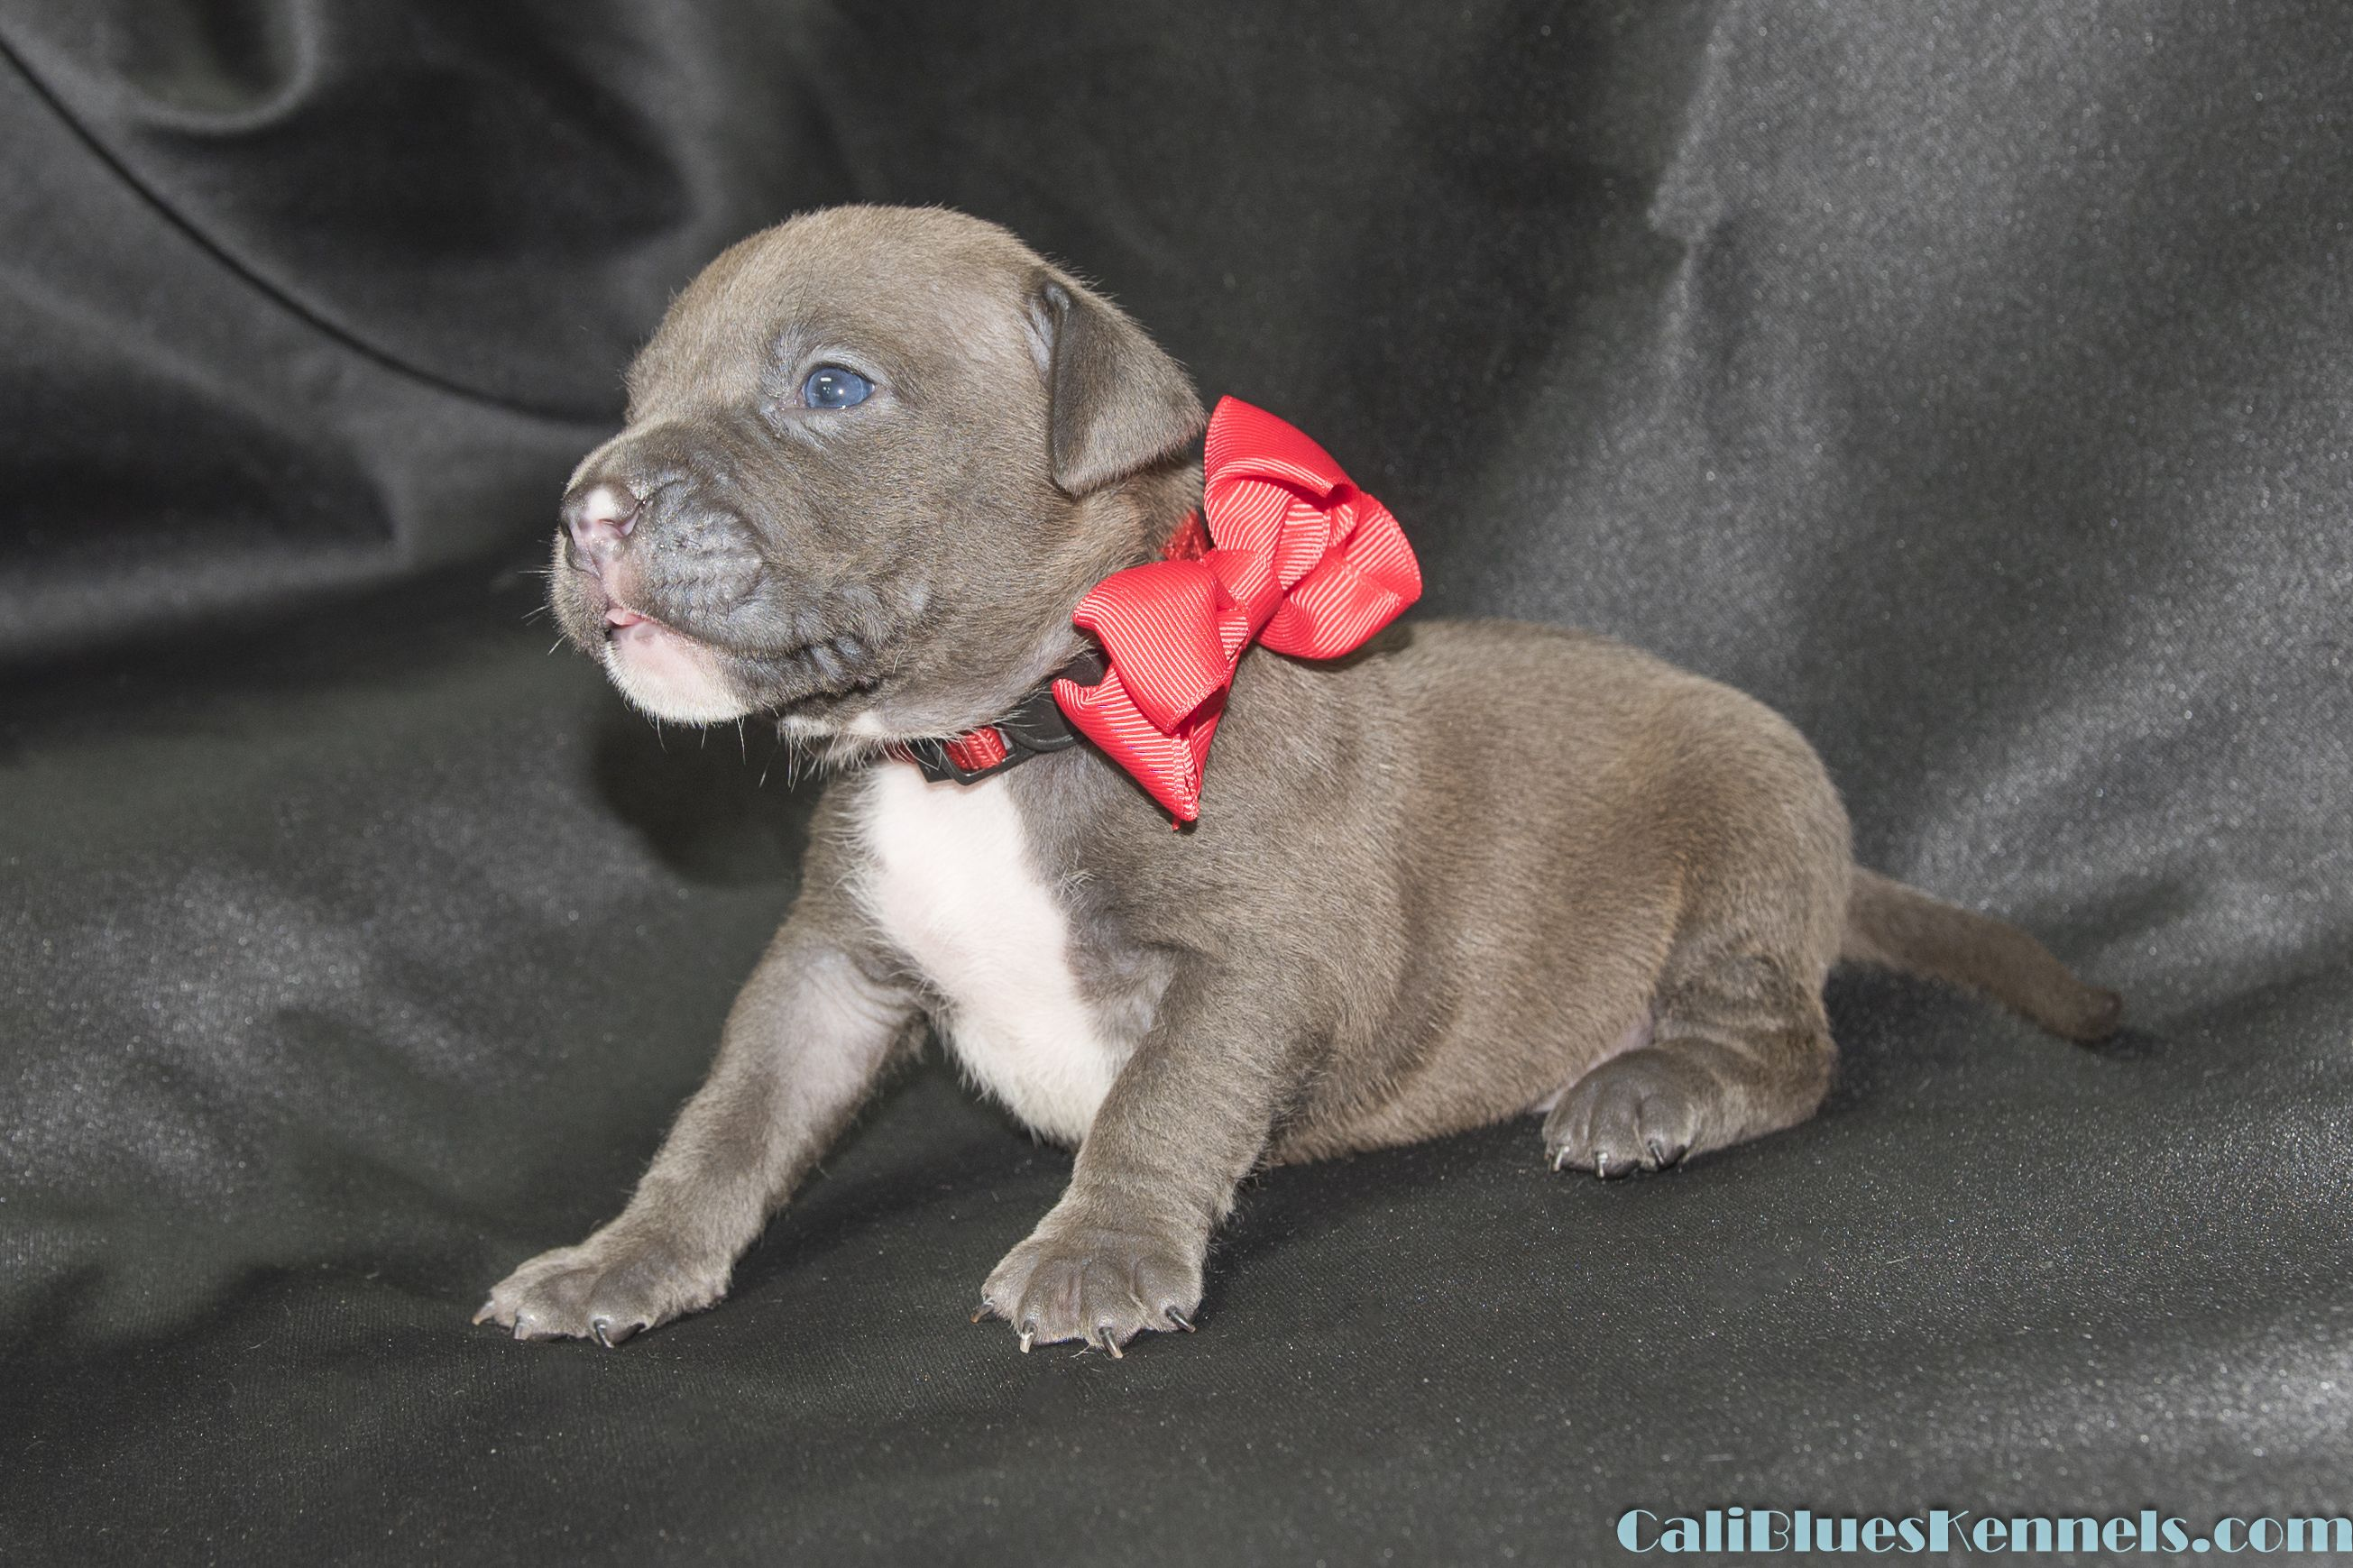 Available Pups Caliblueskennels Com American Bullies Pitbull Puppies American Kenne Bully Pitbull American Bully Pitbull Pup